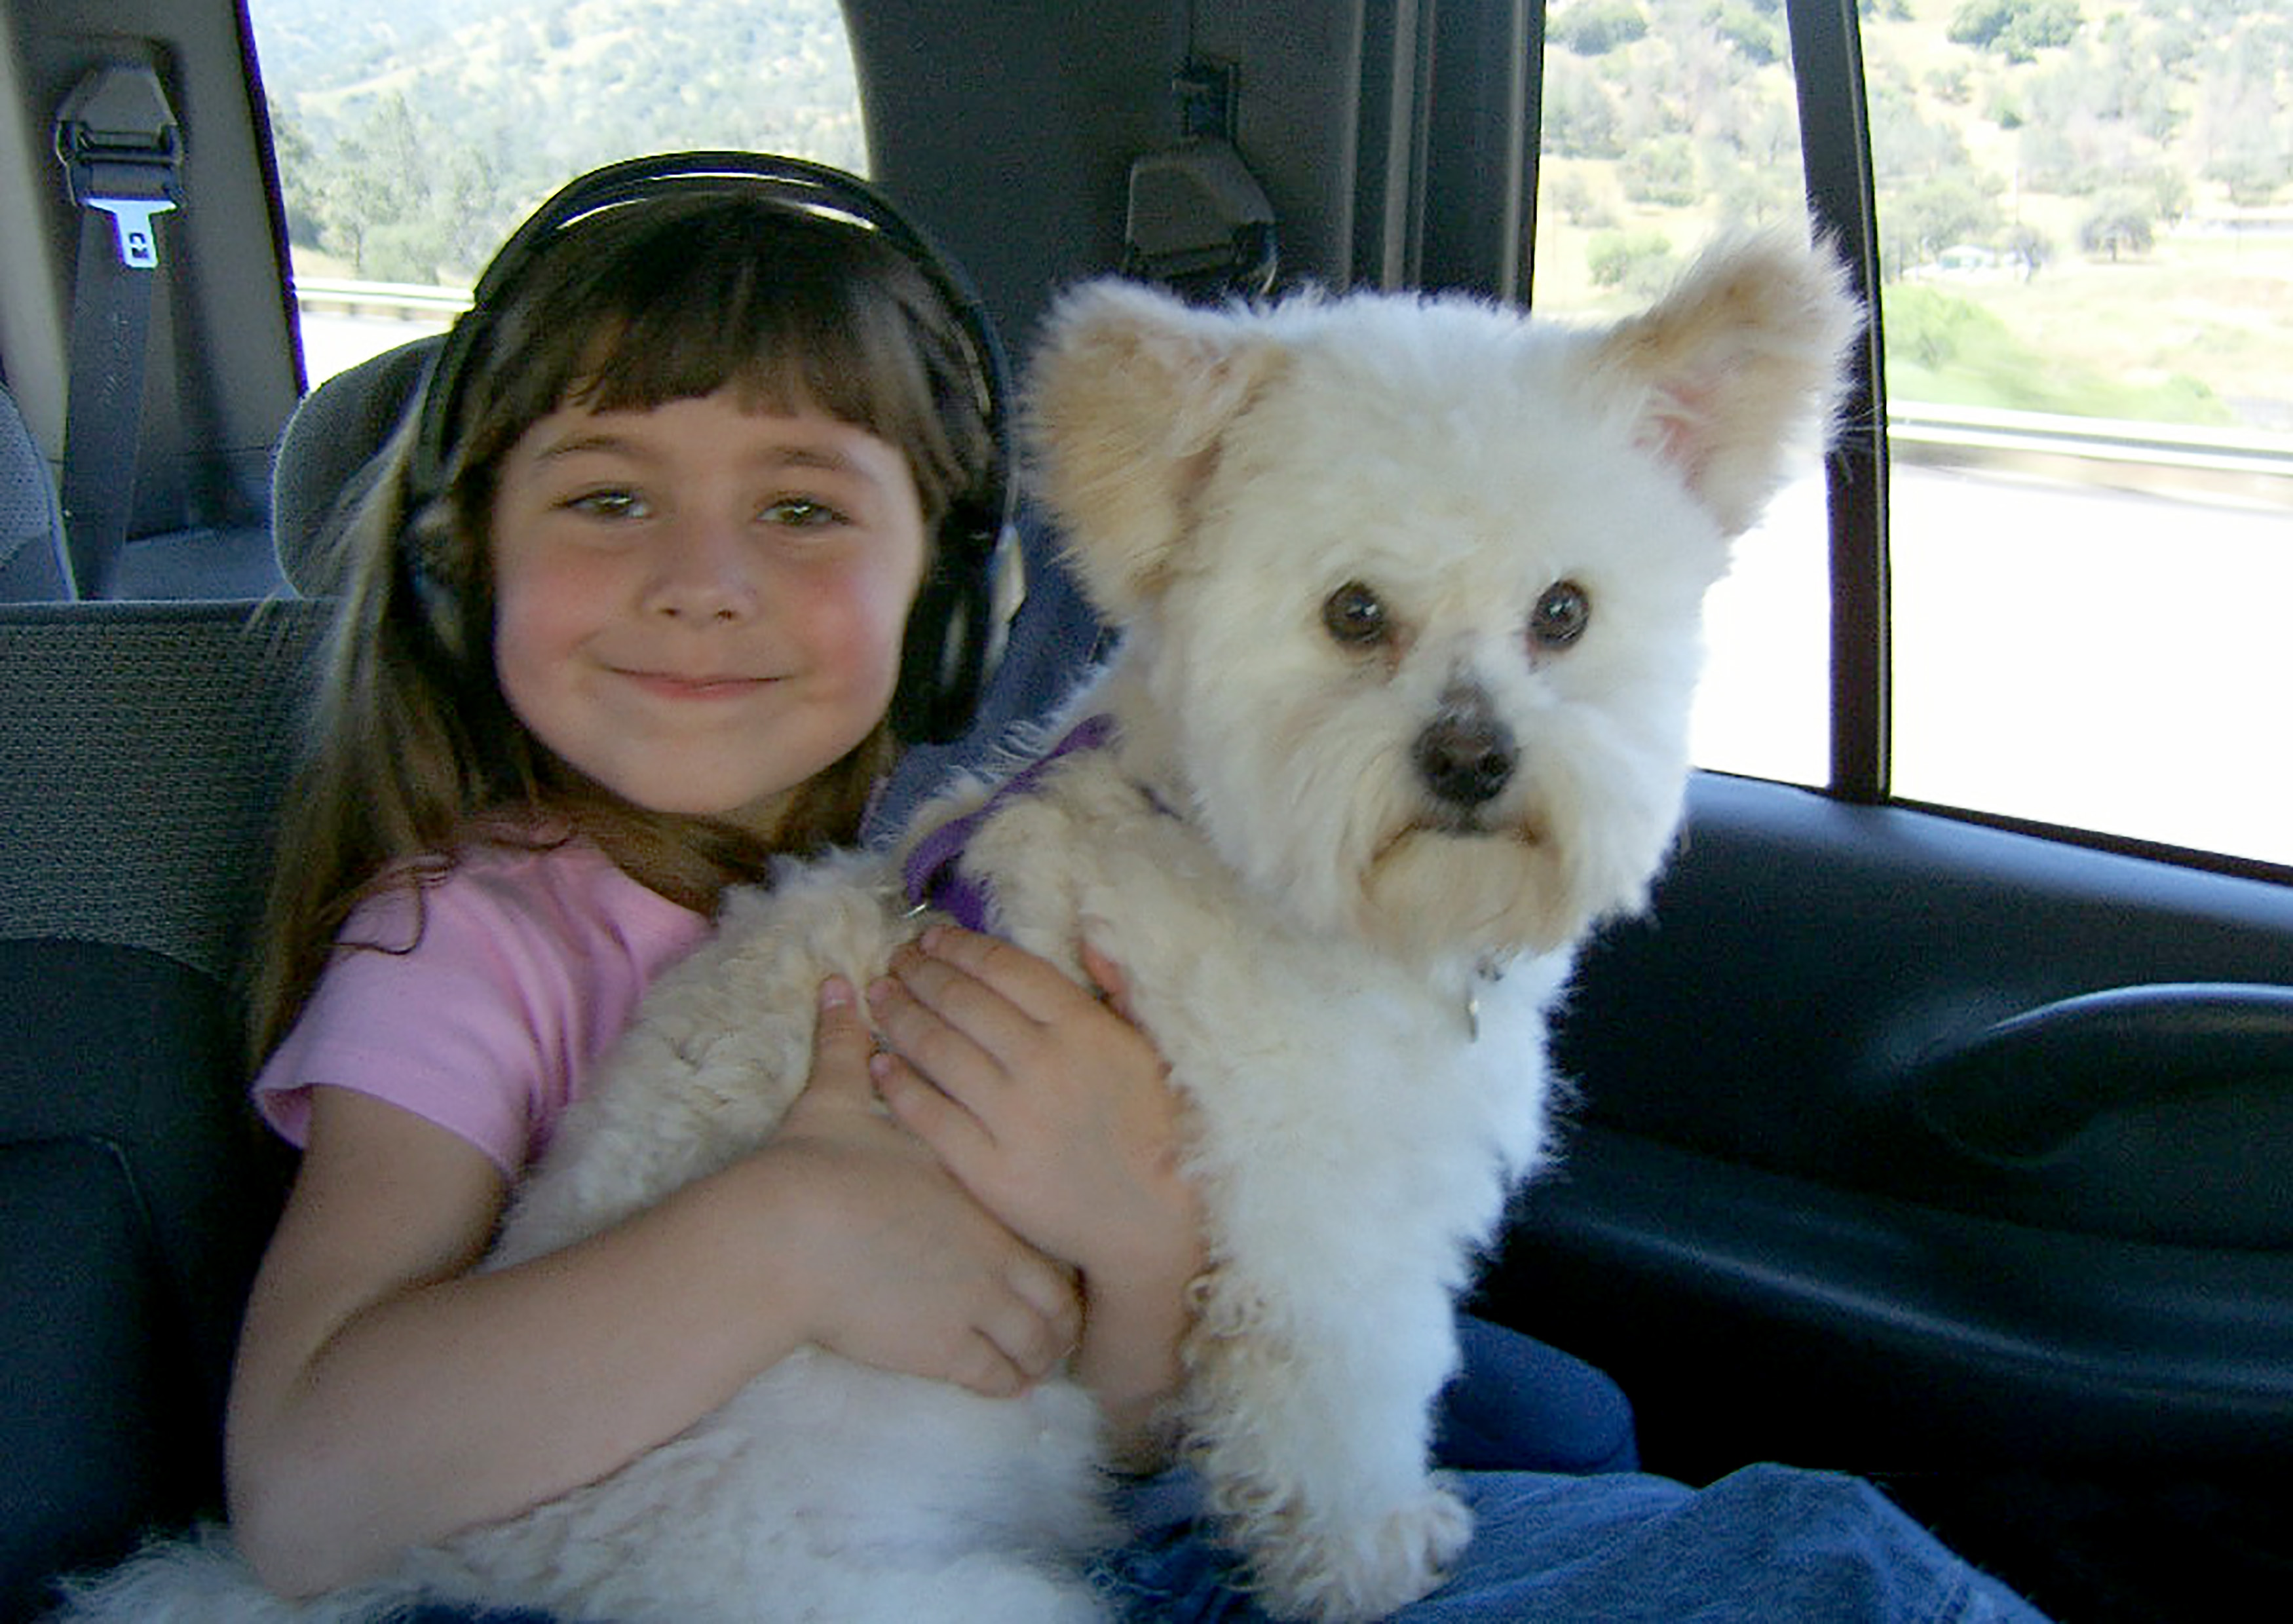 Gizmo with Kira when she was four. Credit: Kennedy News and Media